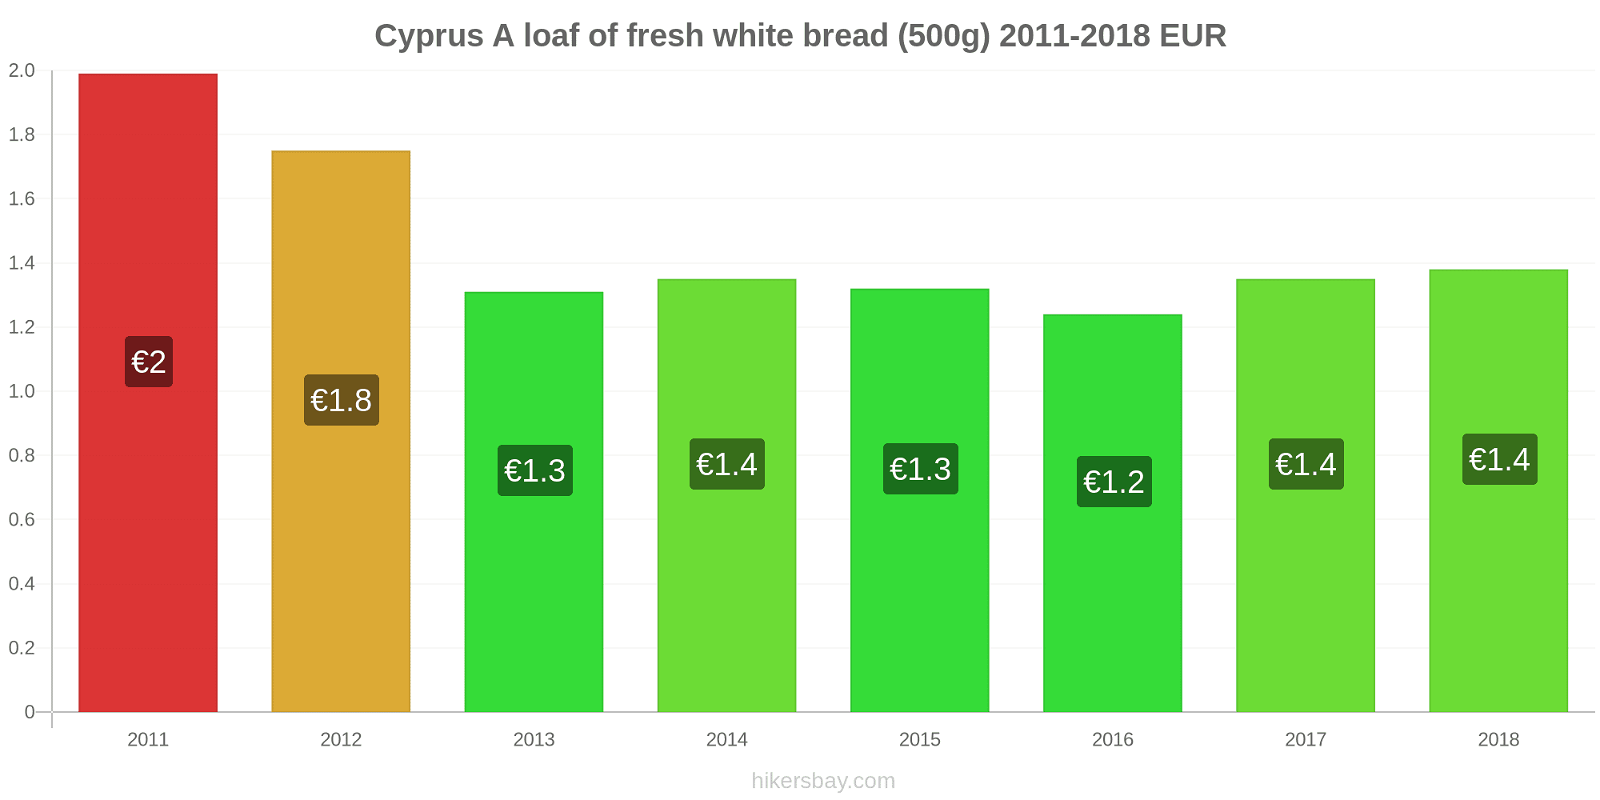 Cyprus price changes A loaf of fresh white bread (500g) hikersbay.com